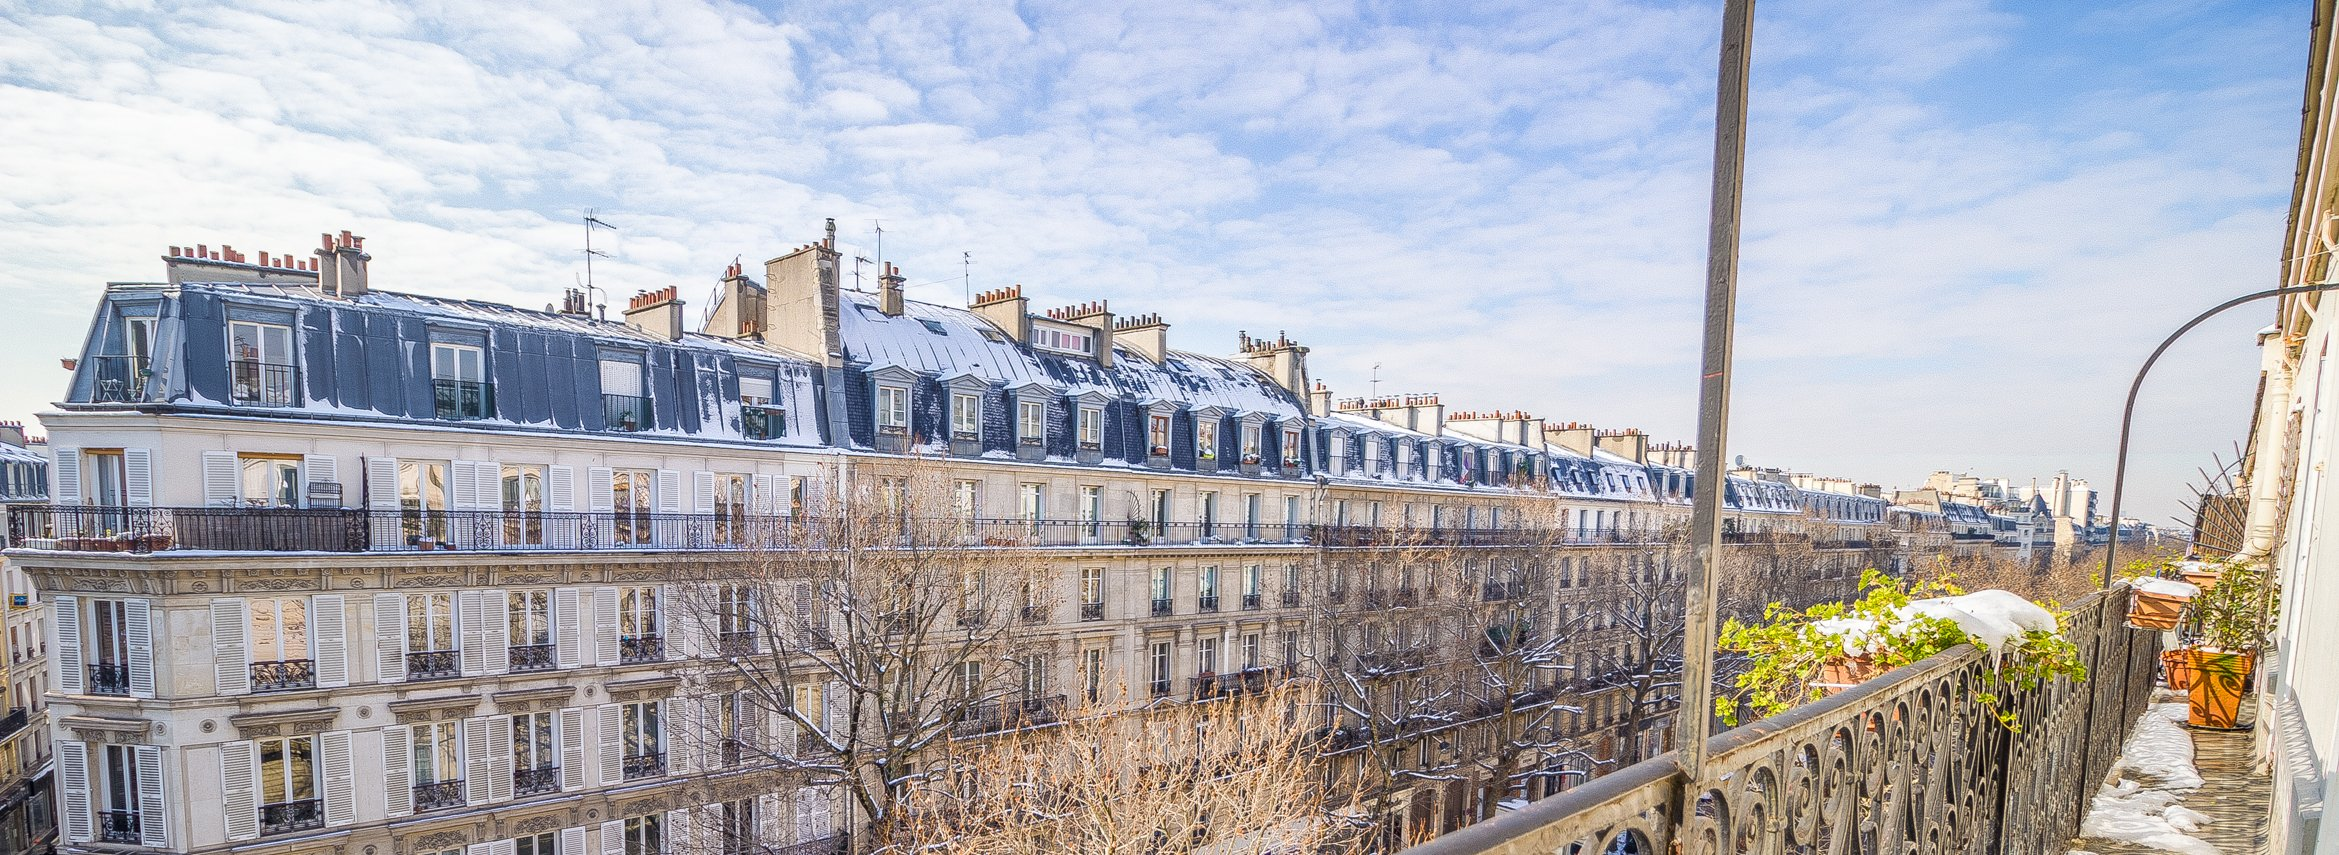 Honoraires vente chasseur immobilier